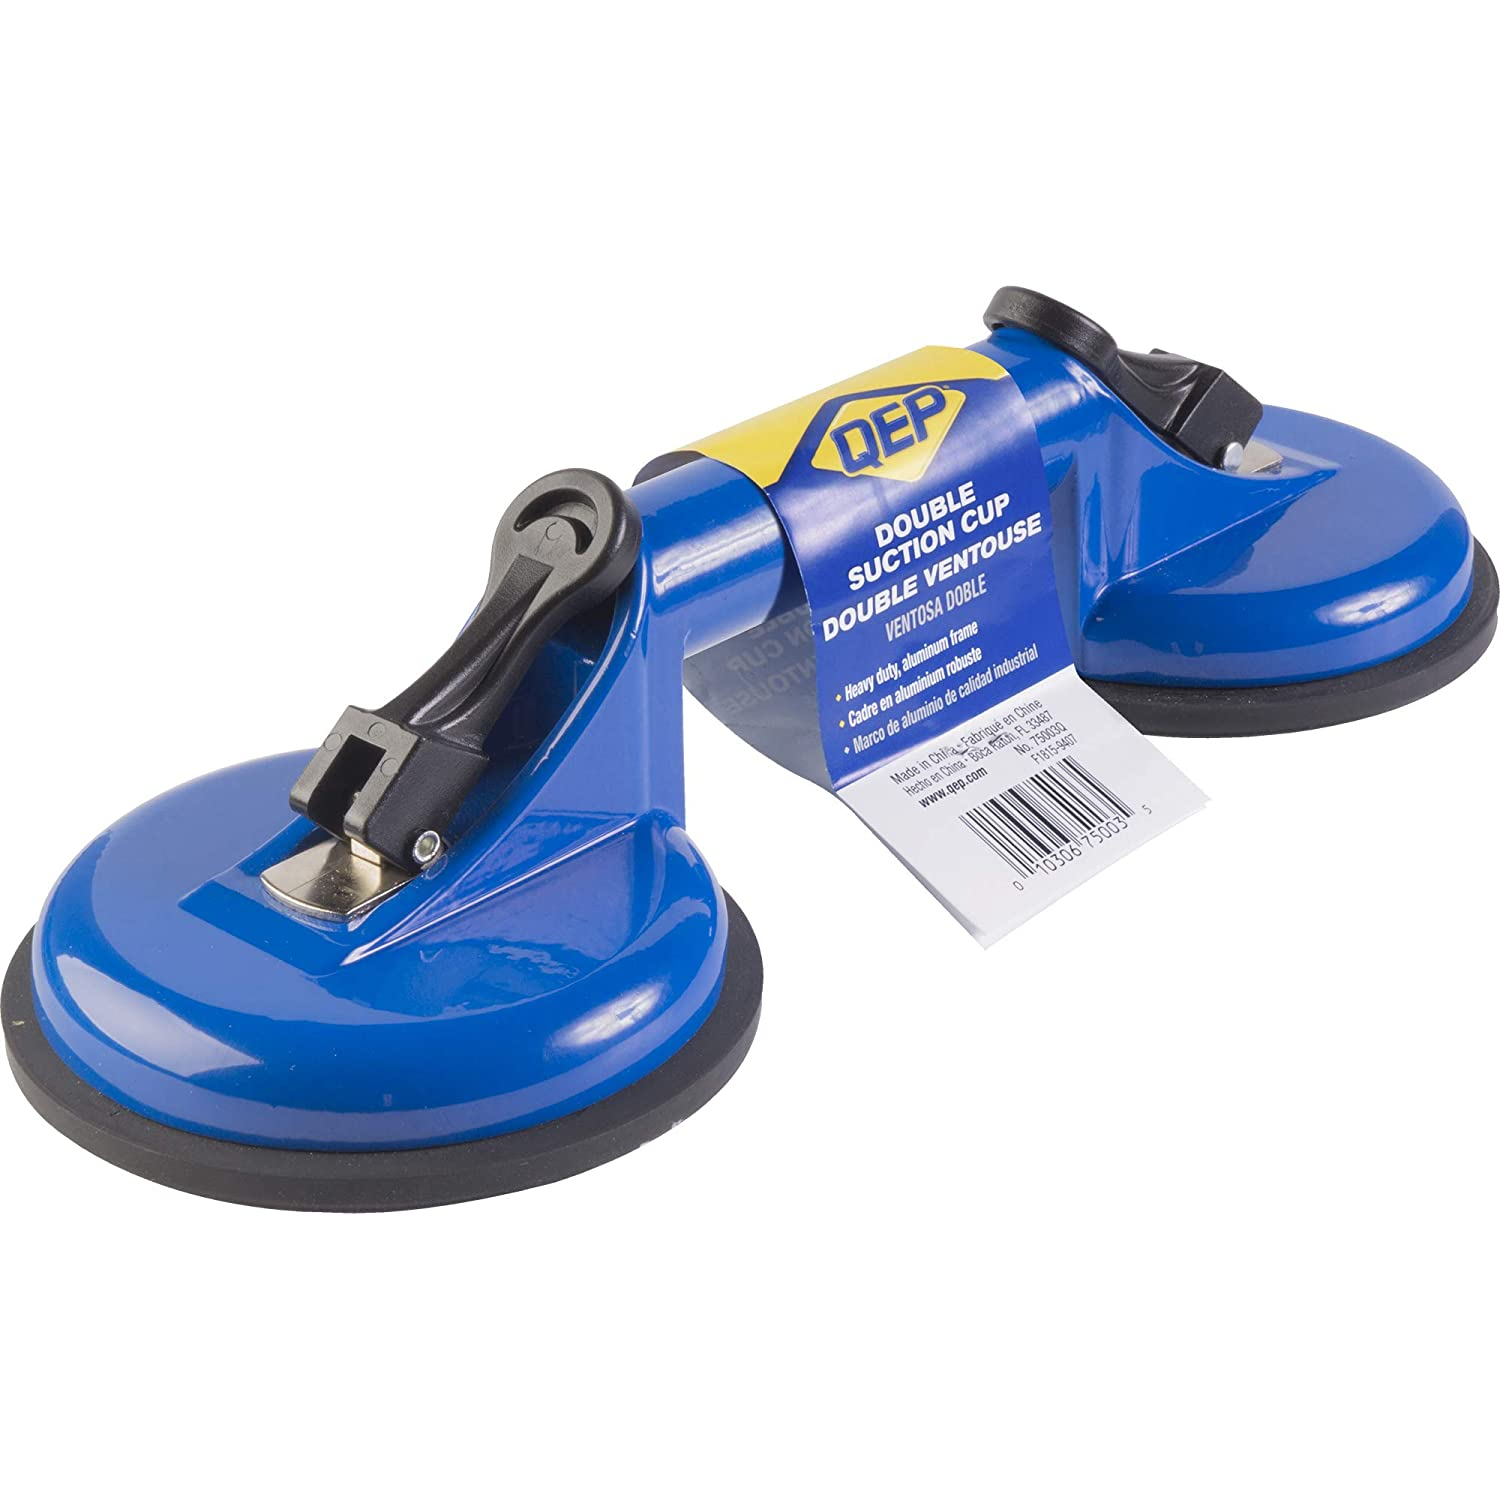 QEP 75003Q Double Suction Cup